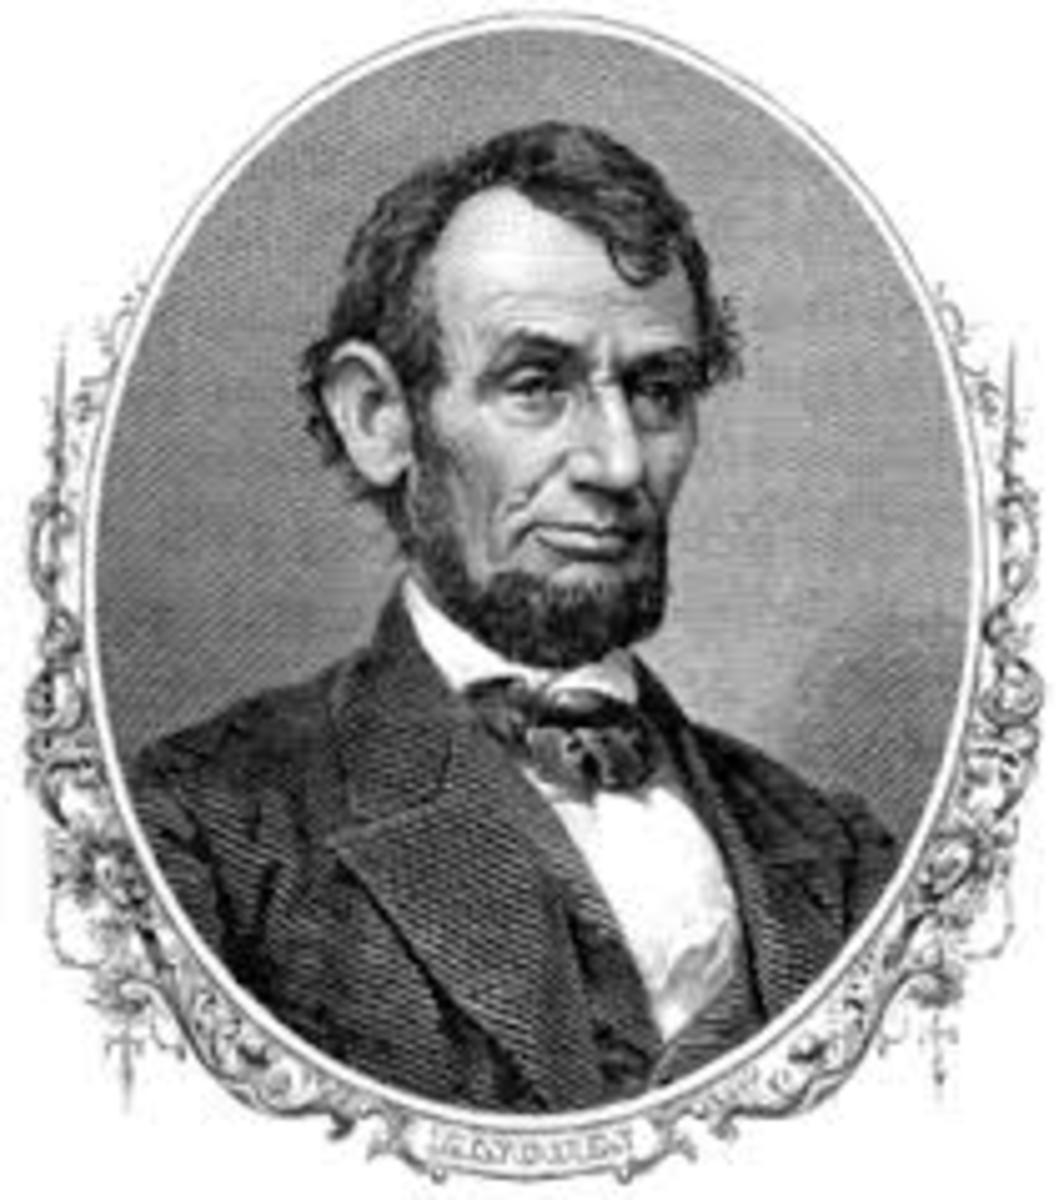 Abe Lincoln, the president who made Thanksgiving a national holiday.